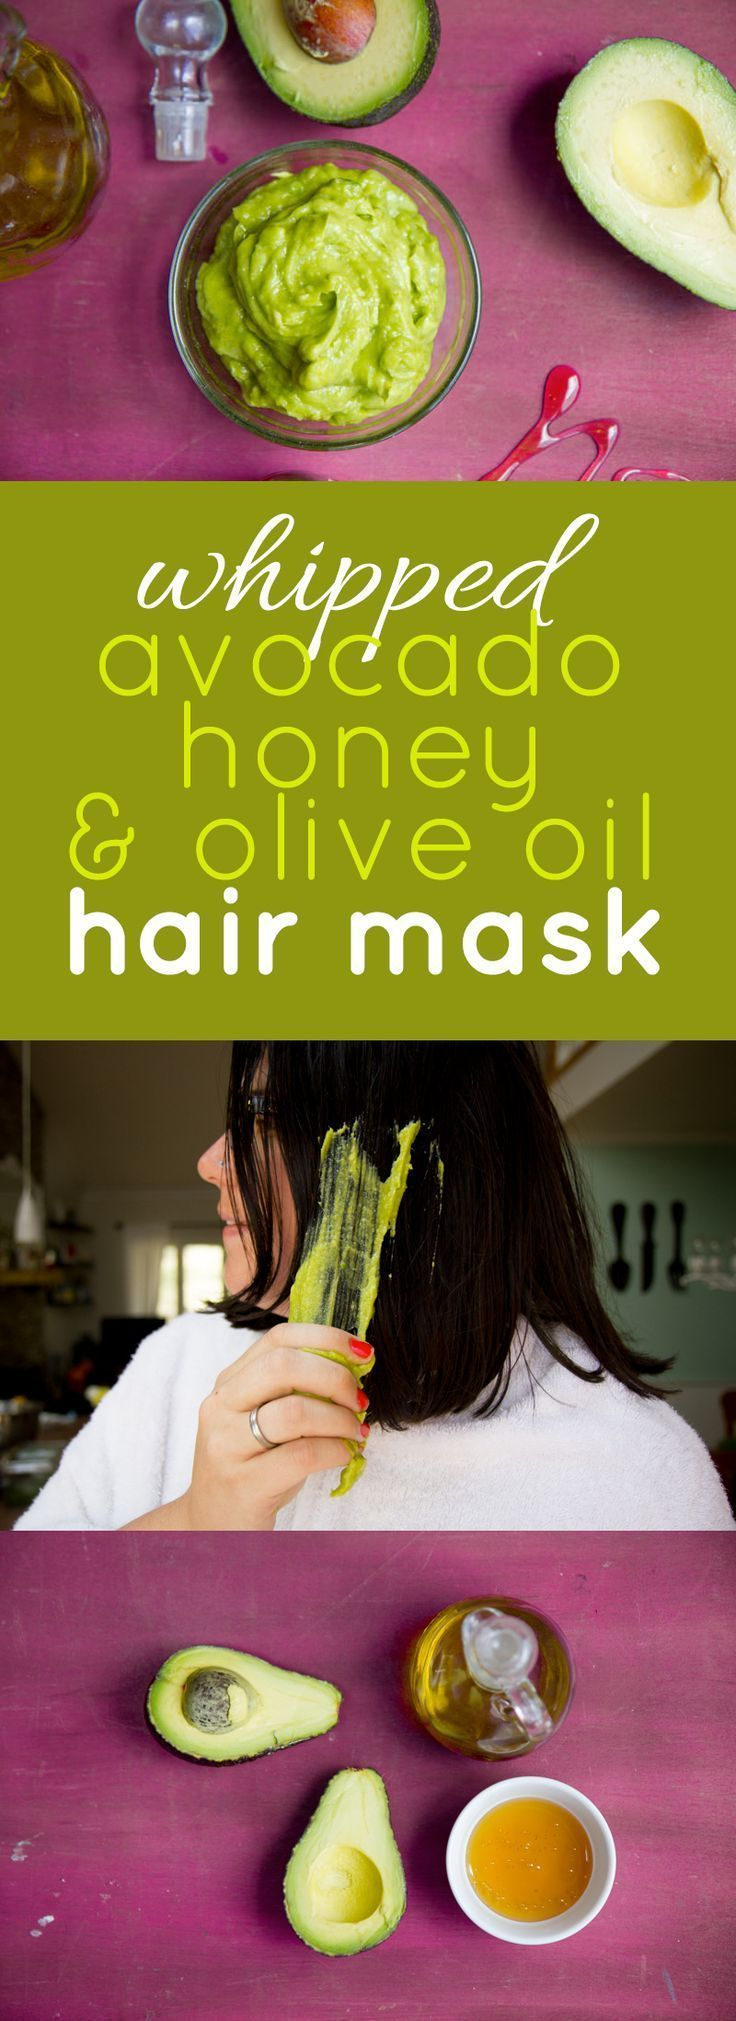 Whipped Avocado, Honey, and Olive Oil Hair Mask. Take the time to care for yours...